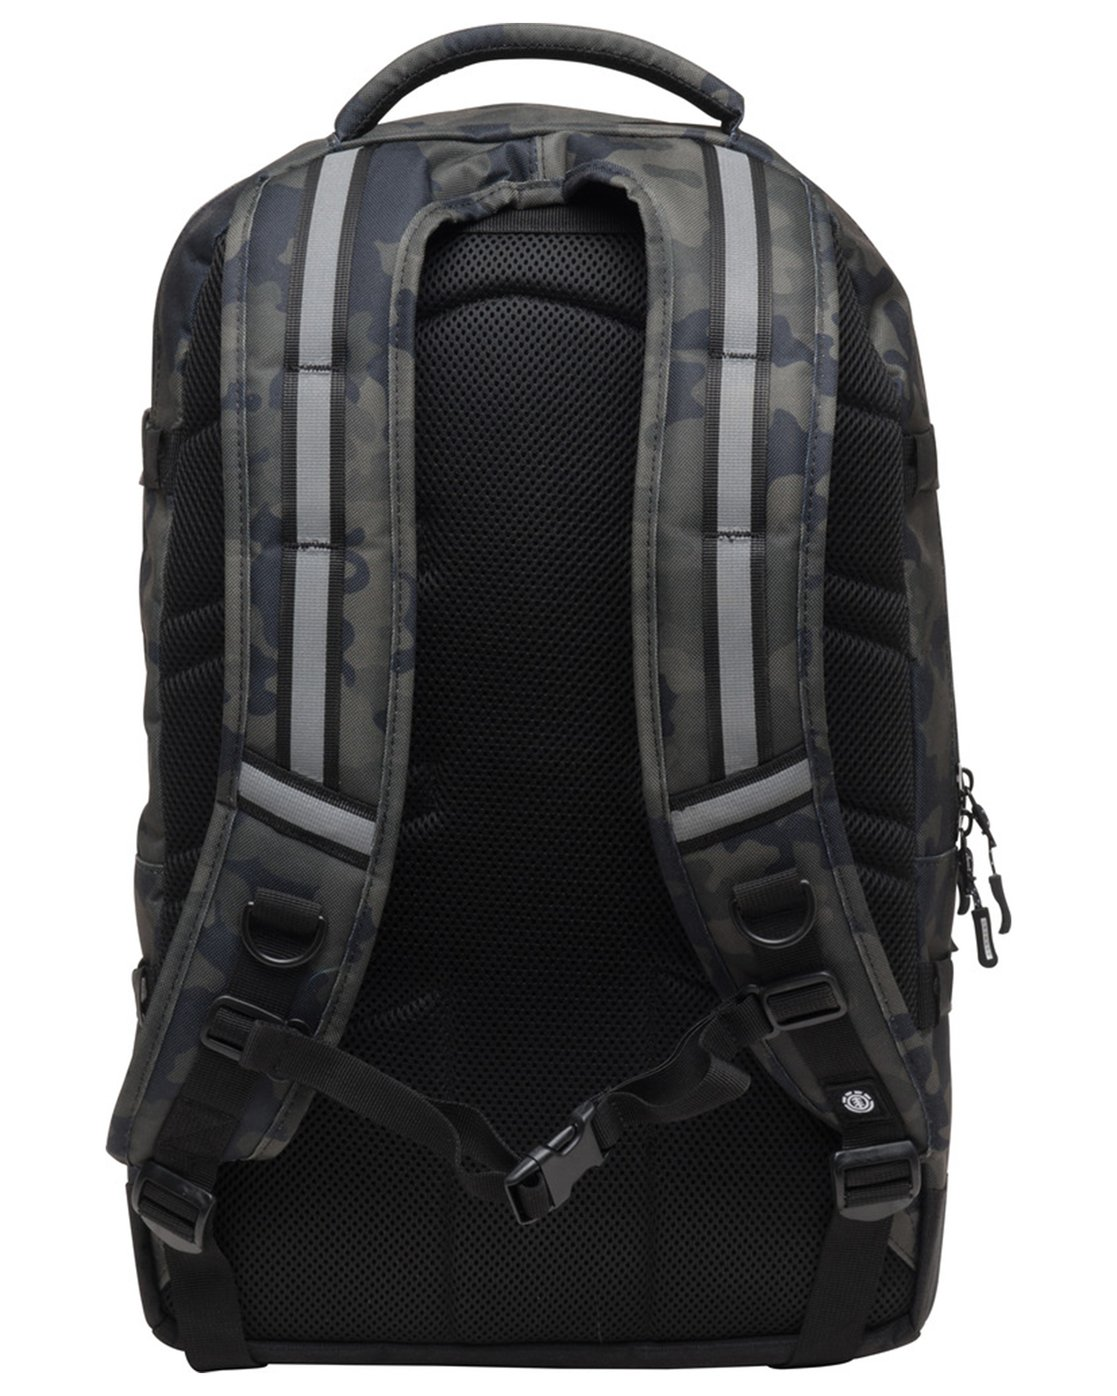 Ranker Backpack MABKQERA | Element